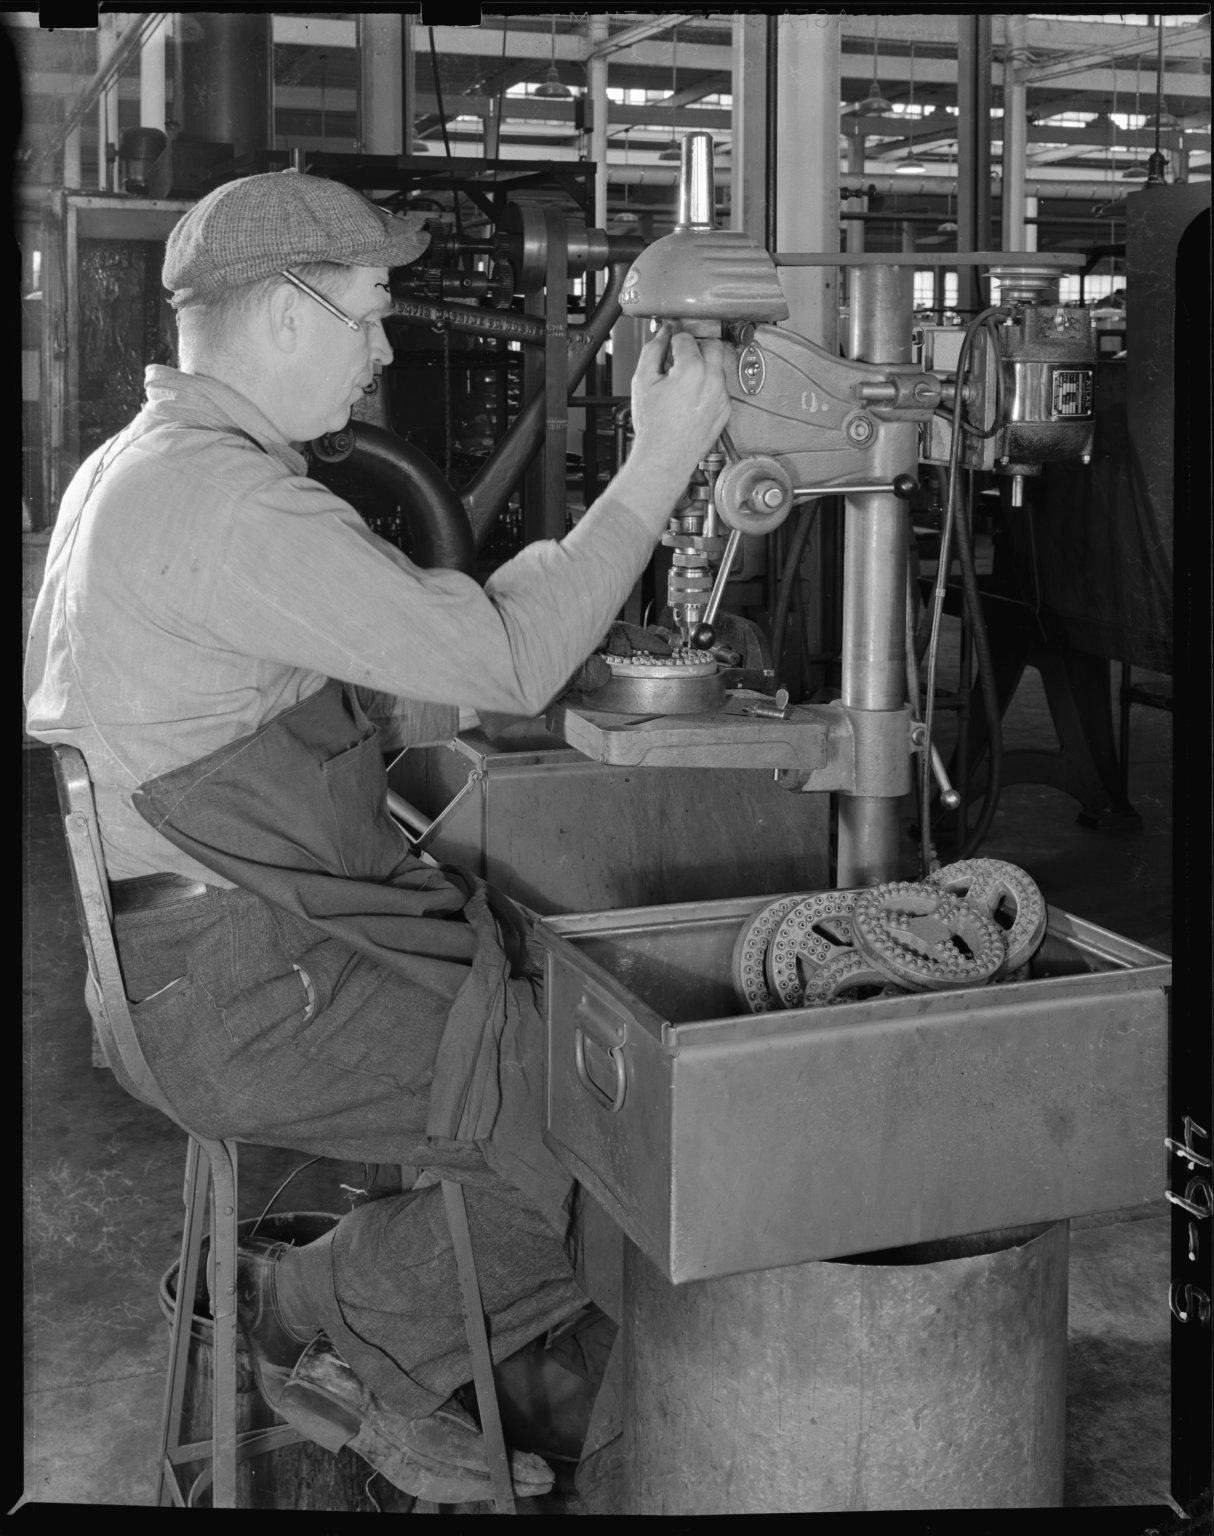 Atlas Press Company, employee of Humphrey Company operating drill press, profile view